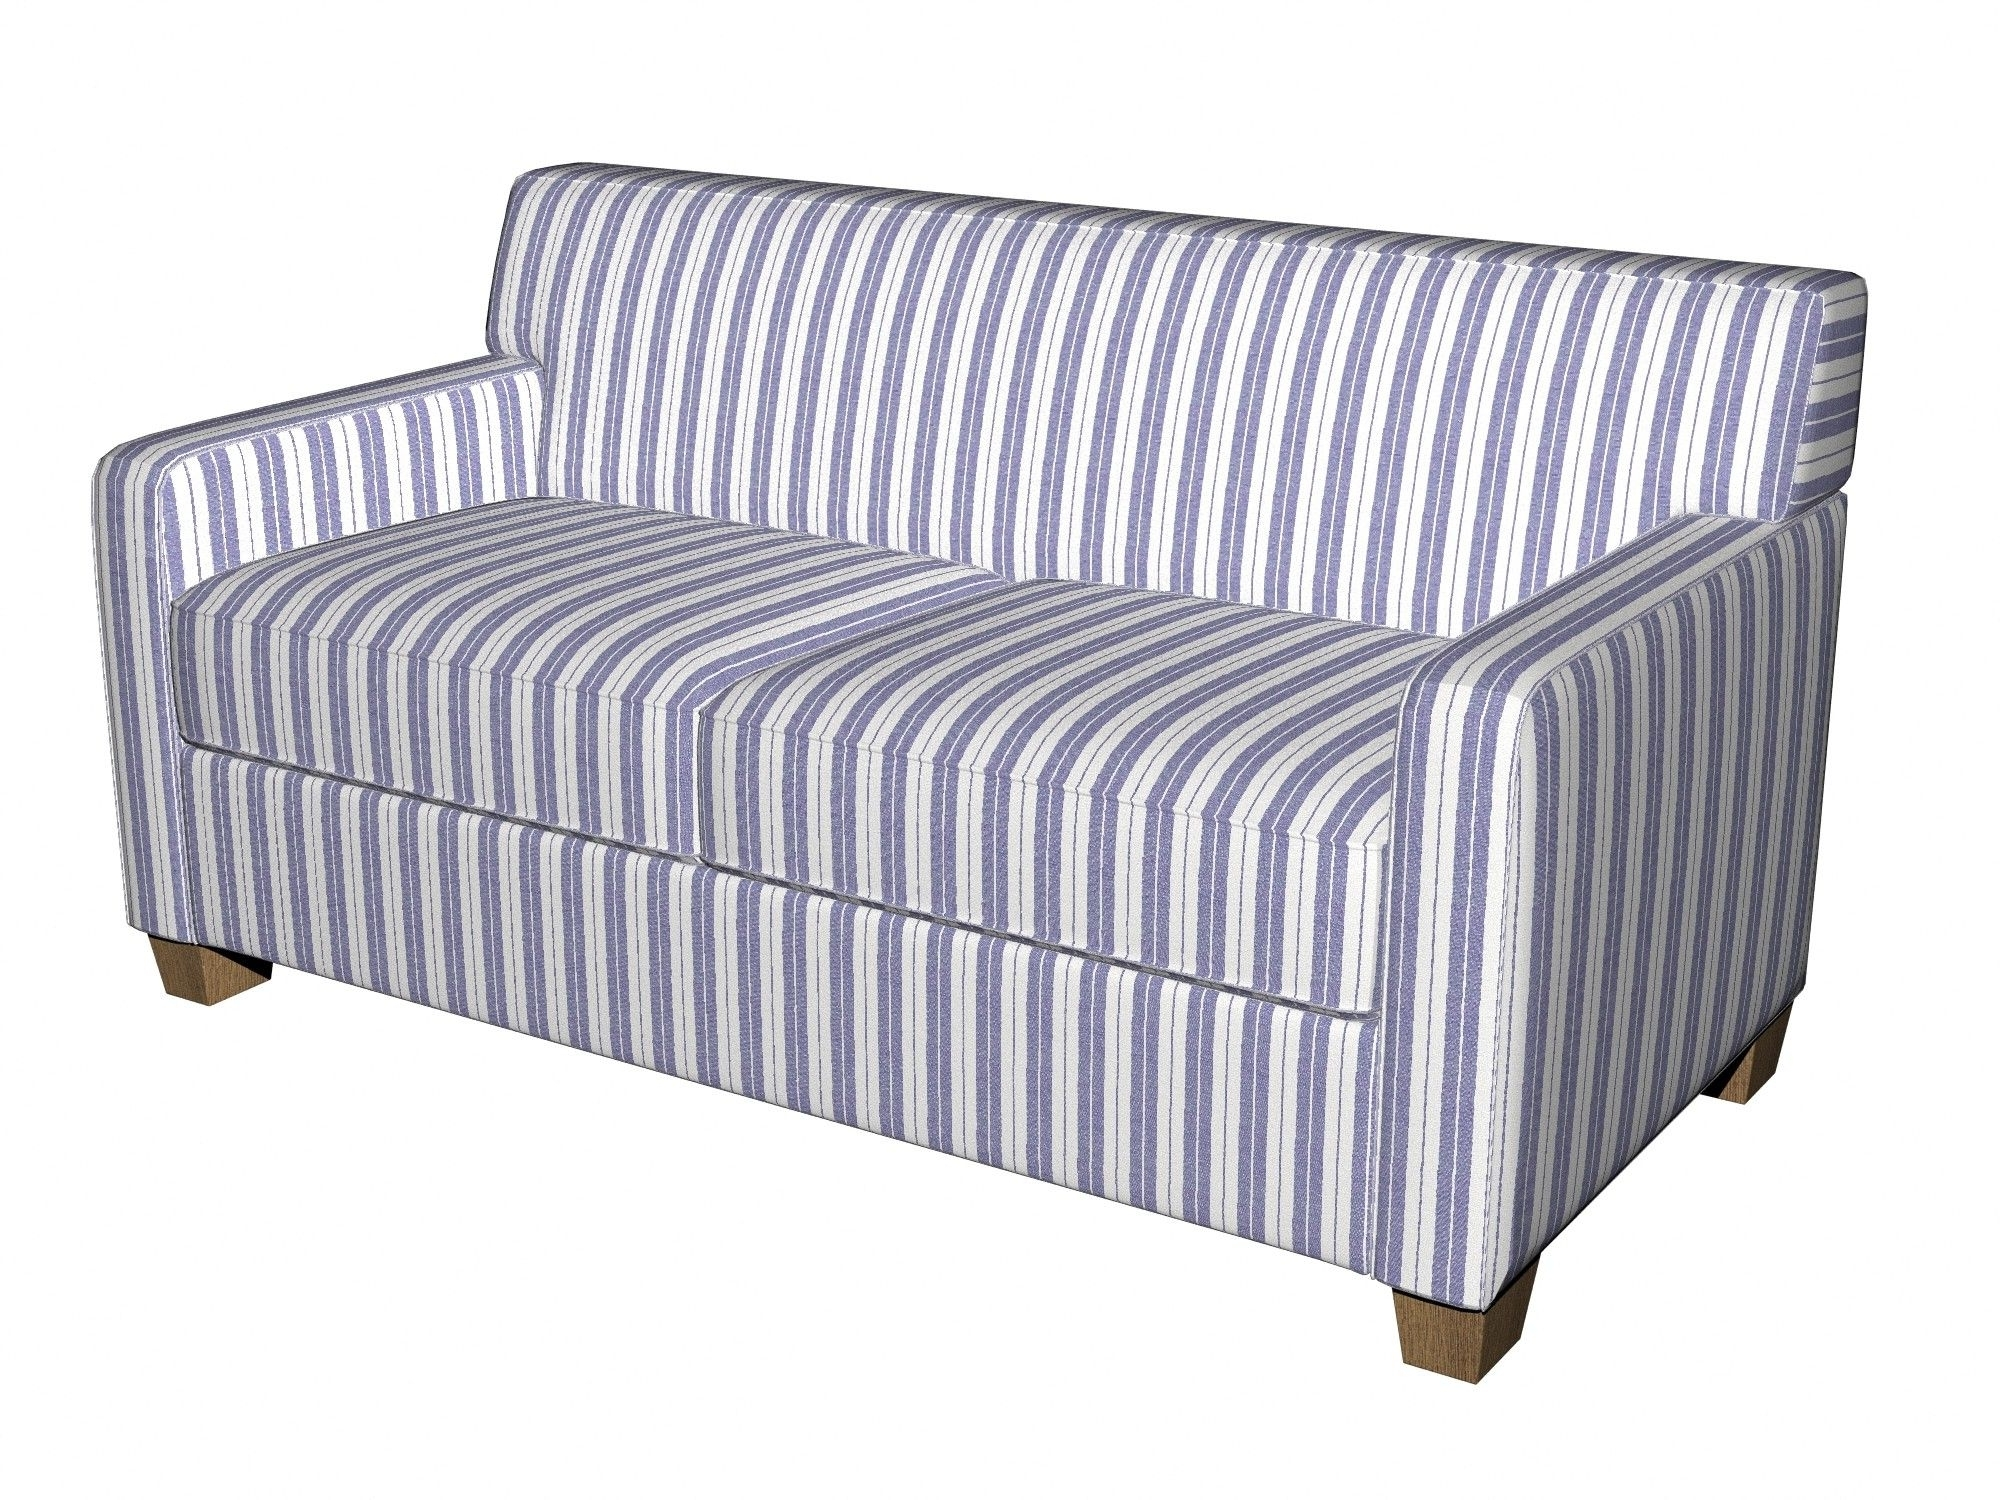 2018 Denim Blue And White Ticking Stripes Heavy Duty Upholstery Fabric Within Striped Sofas And Chairs (View 15 of 20)